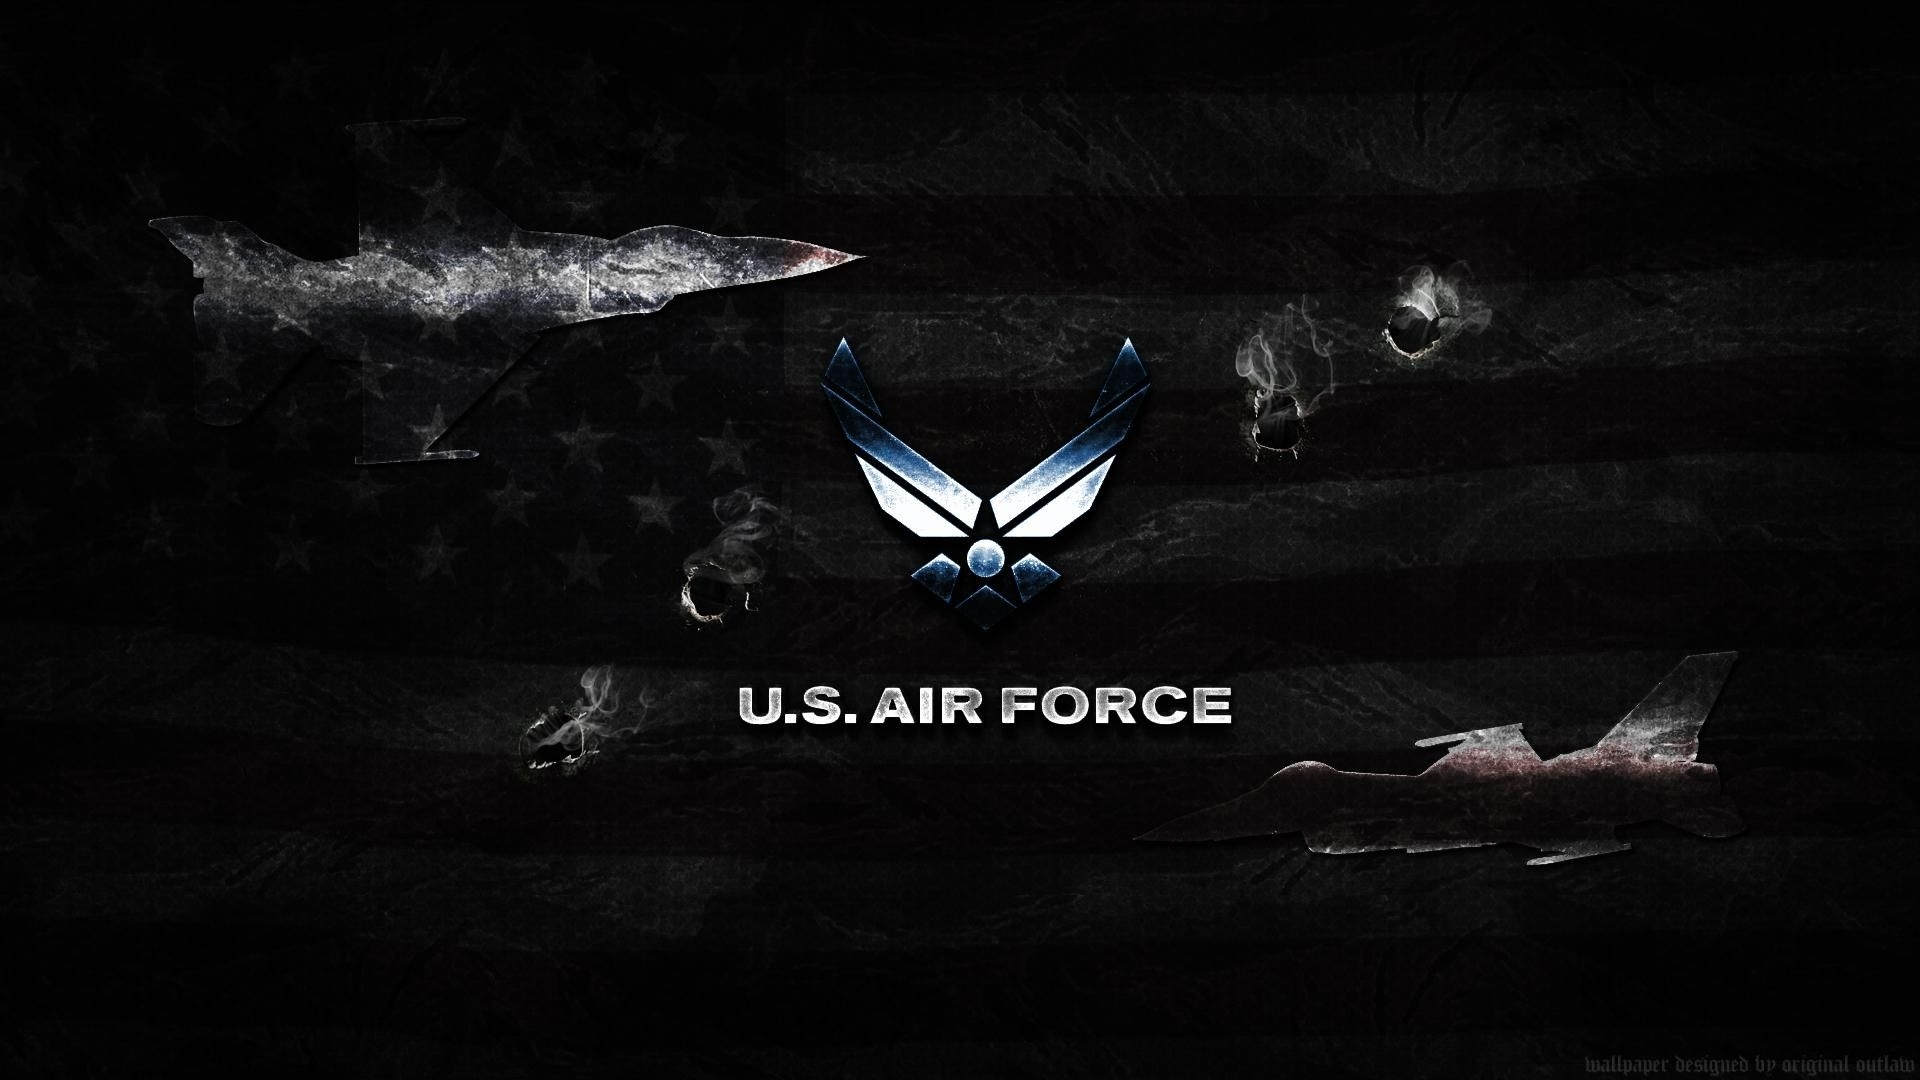 u.s.air force wallpaper | u.s.air force | pinterest | air force